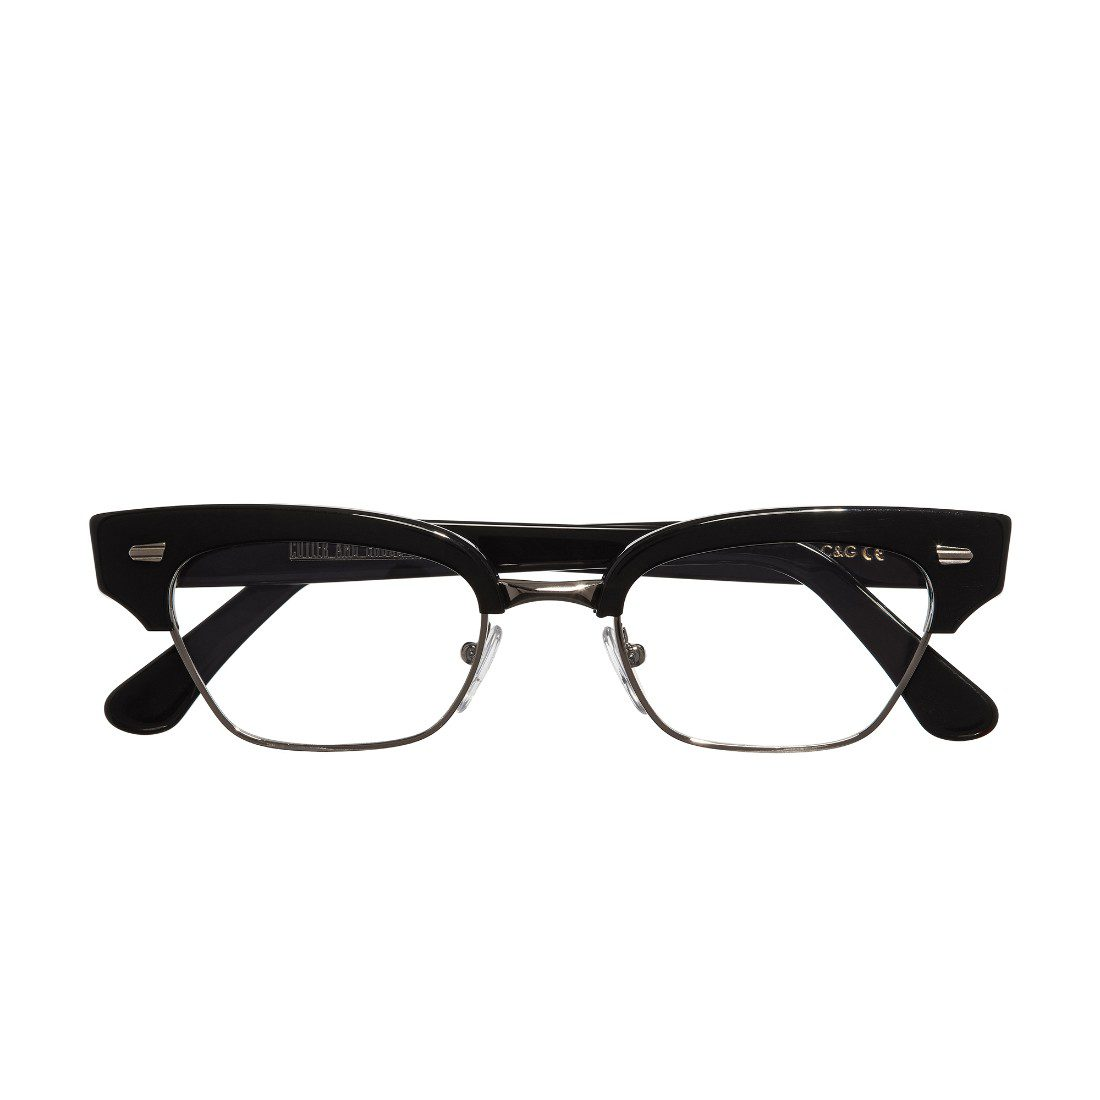 6a9e8779671 Kingsman Glasses by Cutler and Gross - Ape to Gentleman